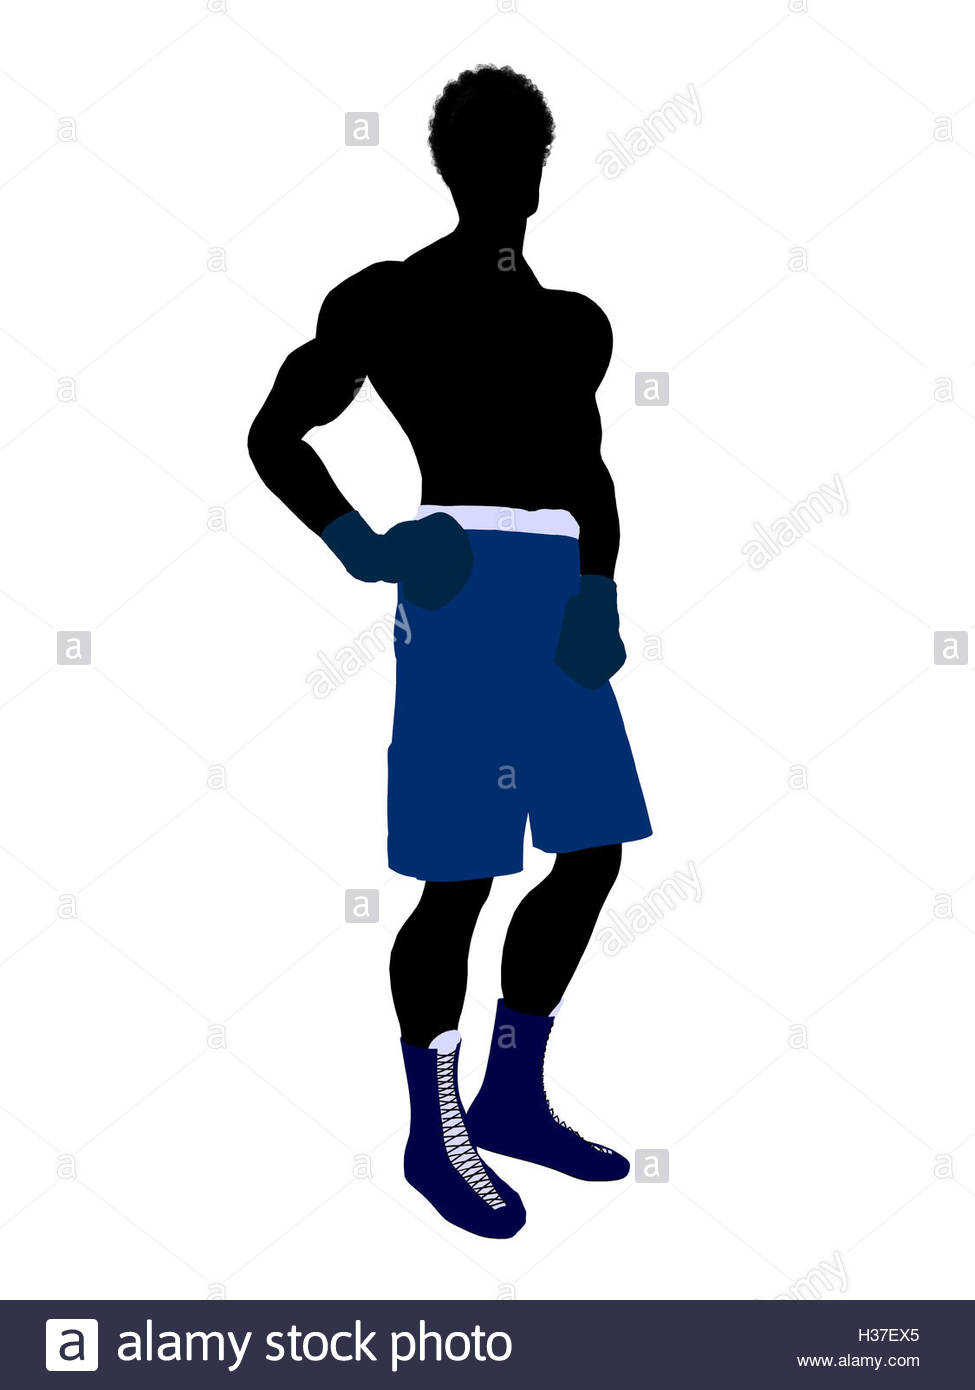 975x1390 African American Male Boxer Illustration Silhouette Stock Photo